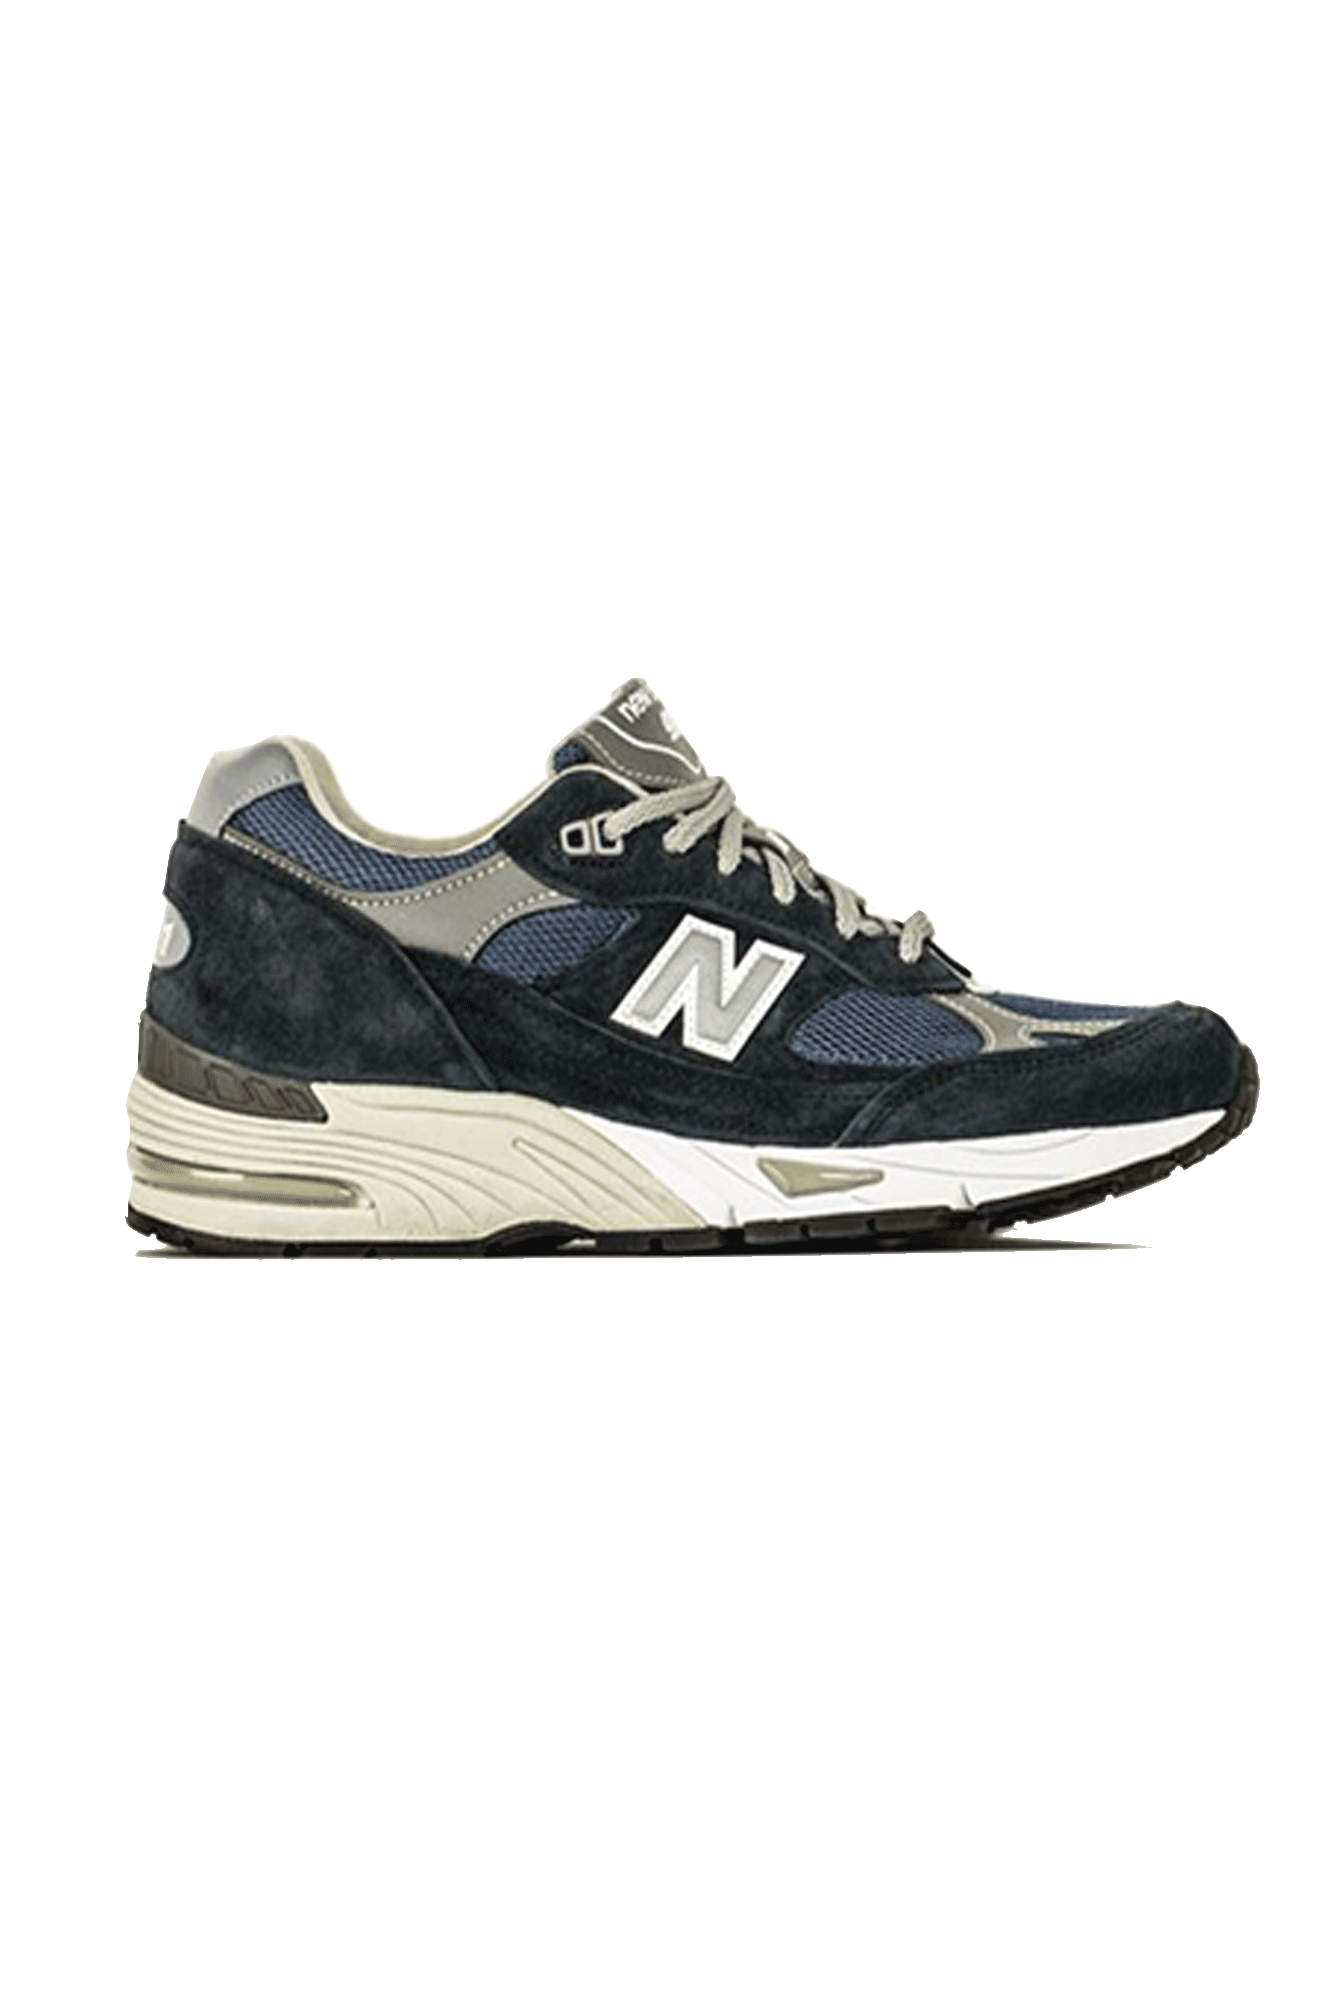 New Balance Sneakers 991 Blu M991NV#000#C0007#12 - One Block Down